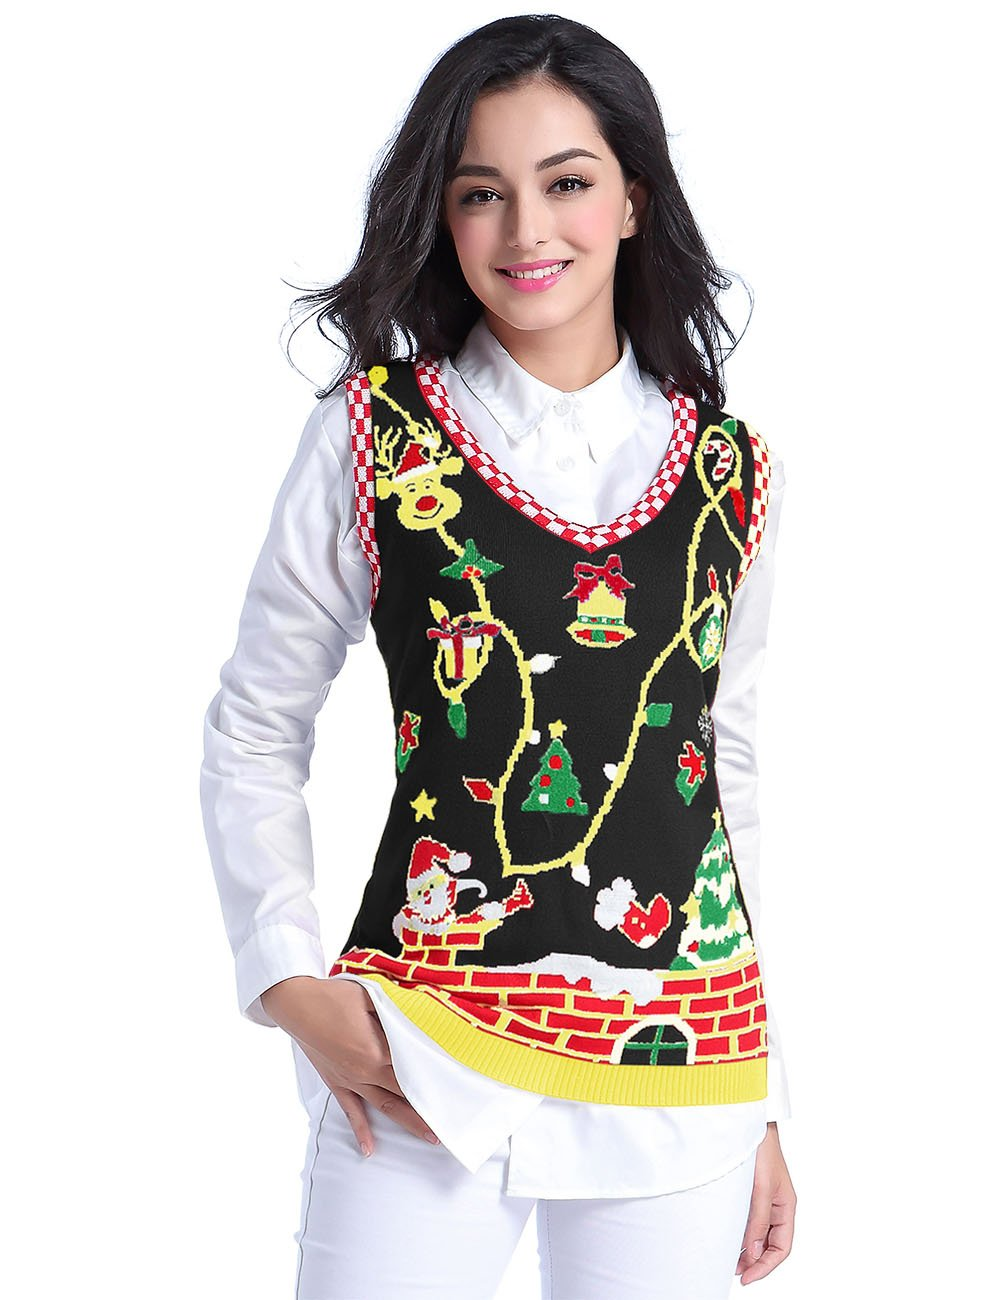 v28 Ugly Christmas Sweater, Women Girl Cute Vintage Knit Xmas Pulli Sweater Vest (M, Black)